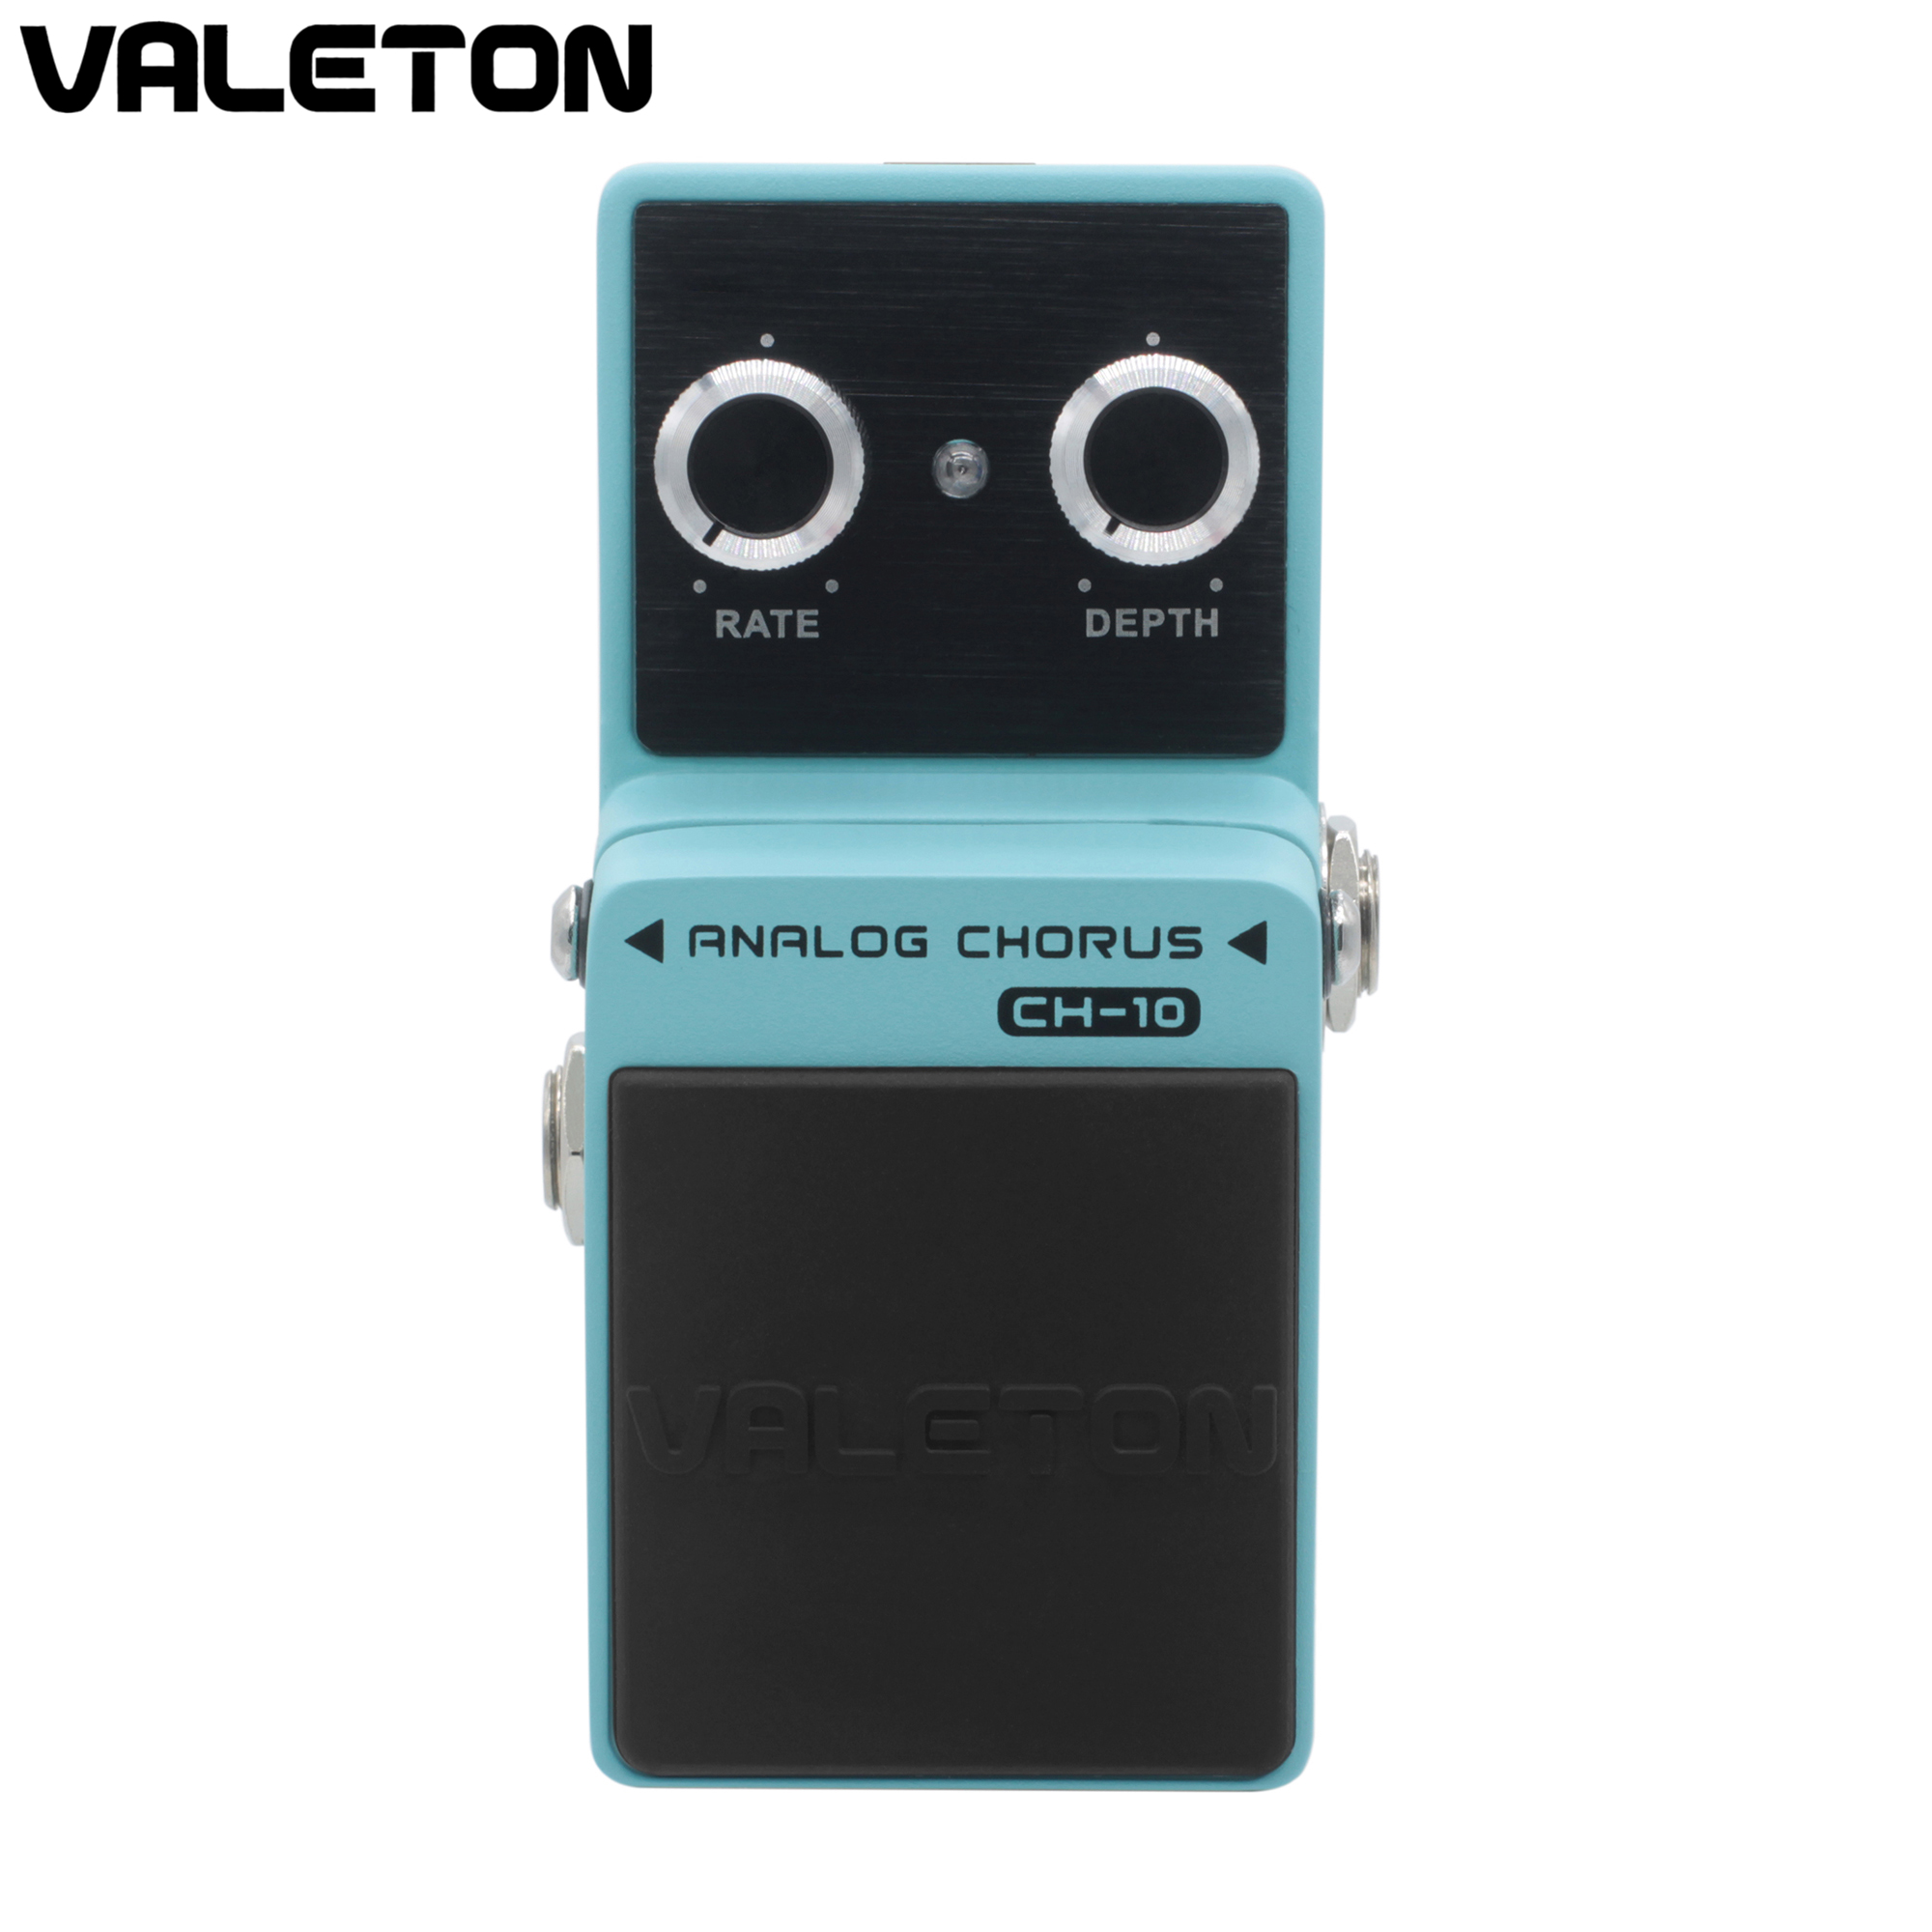 Valeton Valeton Analog Chorus Guitar Pedal Effect Warm Natural Tone Rich Harmonics Buffer Bypass CH-10 mooer ensemble queen bass chorus effect pedal mini guitar effects true bypass with free connector and footswitch topper